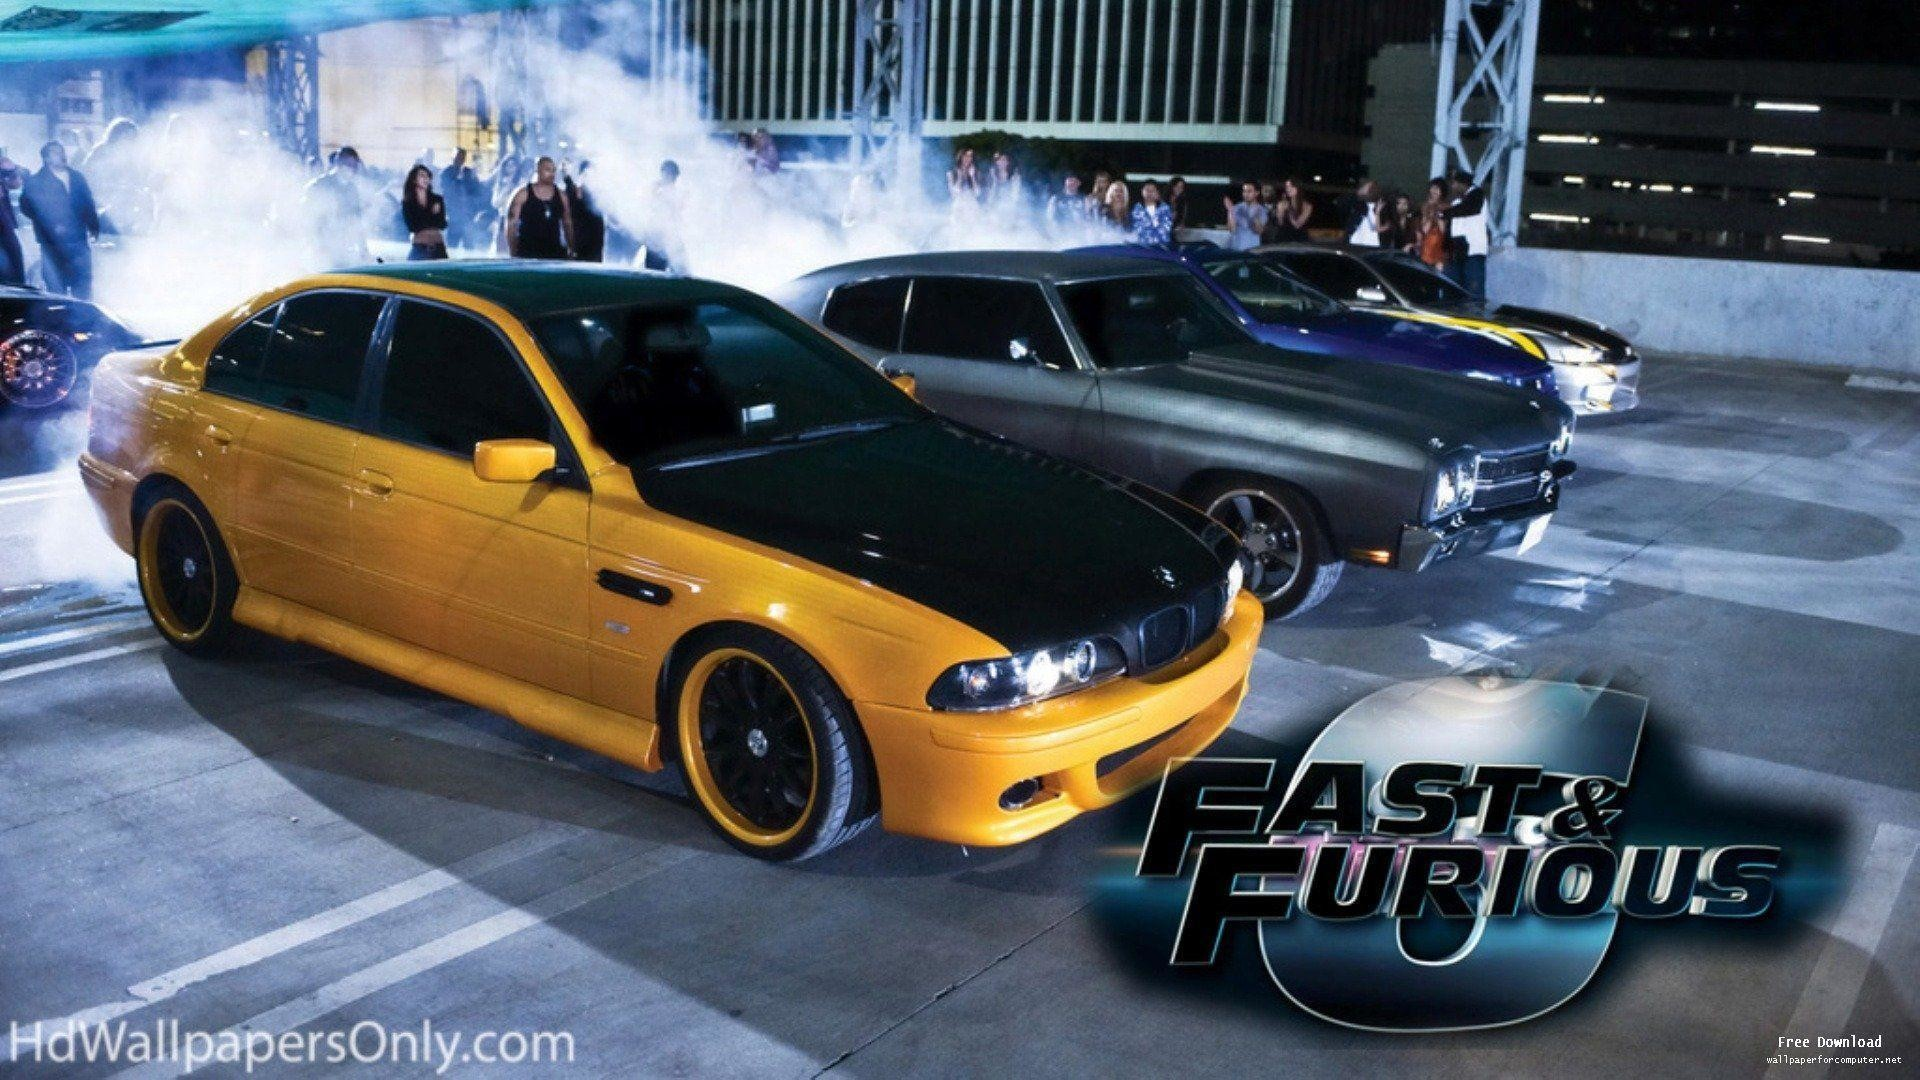 1920x1080 Fast And Furious Cars Wallpapers Wallpaper Cave